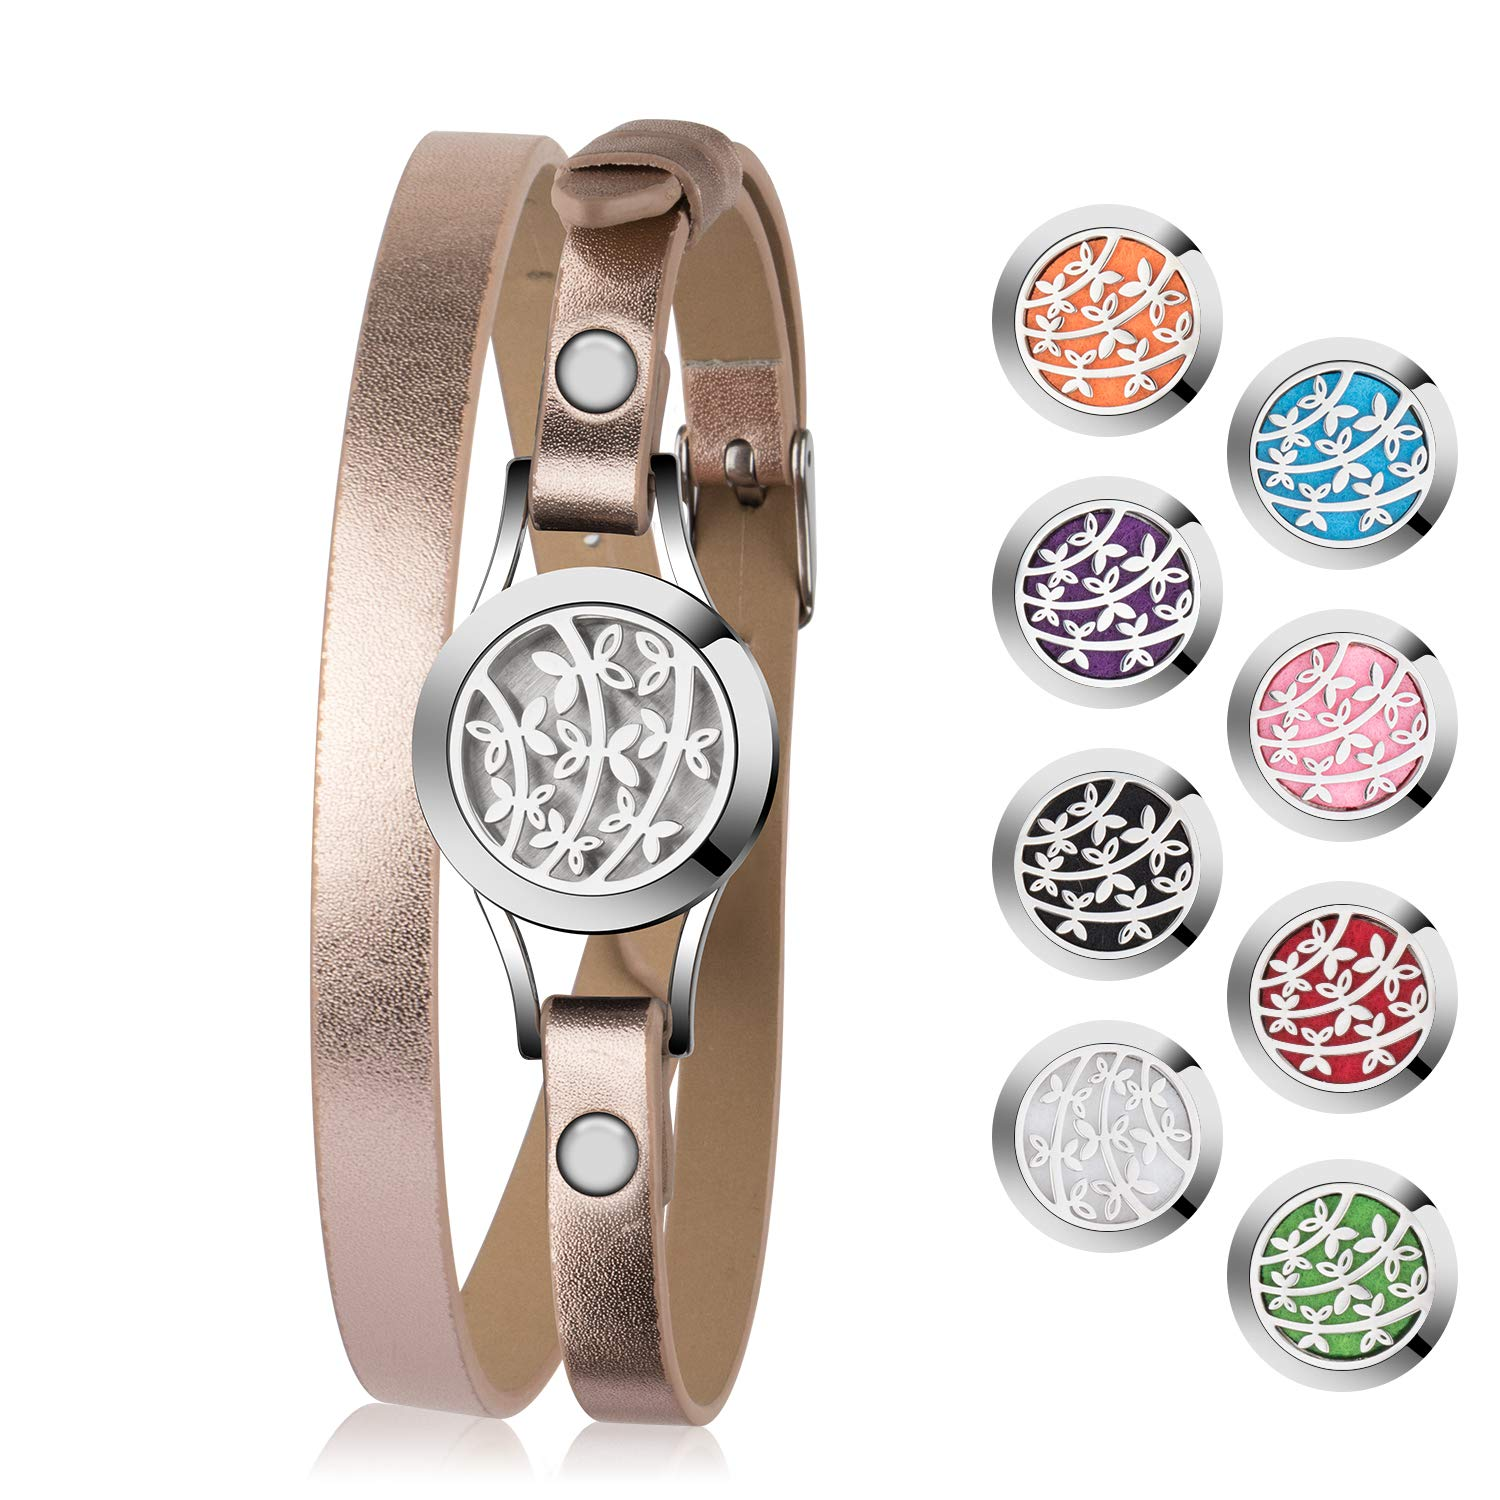 Aromatherapy Essential Oil Diffuser Bracelet Jewelry Birthday Gifts for Women Stainless Steel Locket Anxiety Relieve Bracelets Leather Band with 8 Color Washable Pads Girls Women Jewelry Gift Set